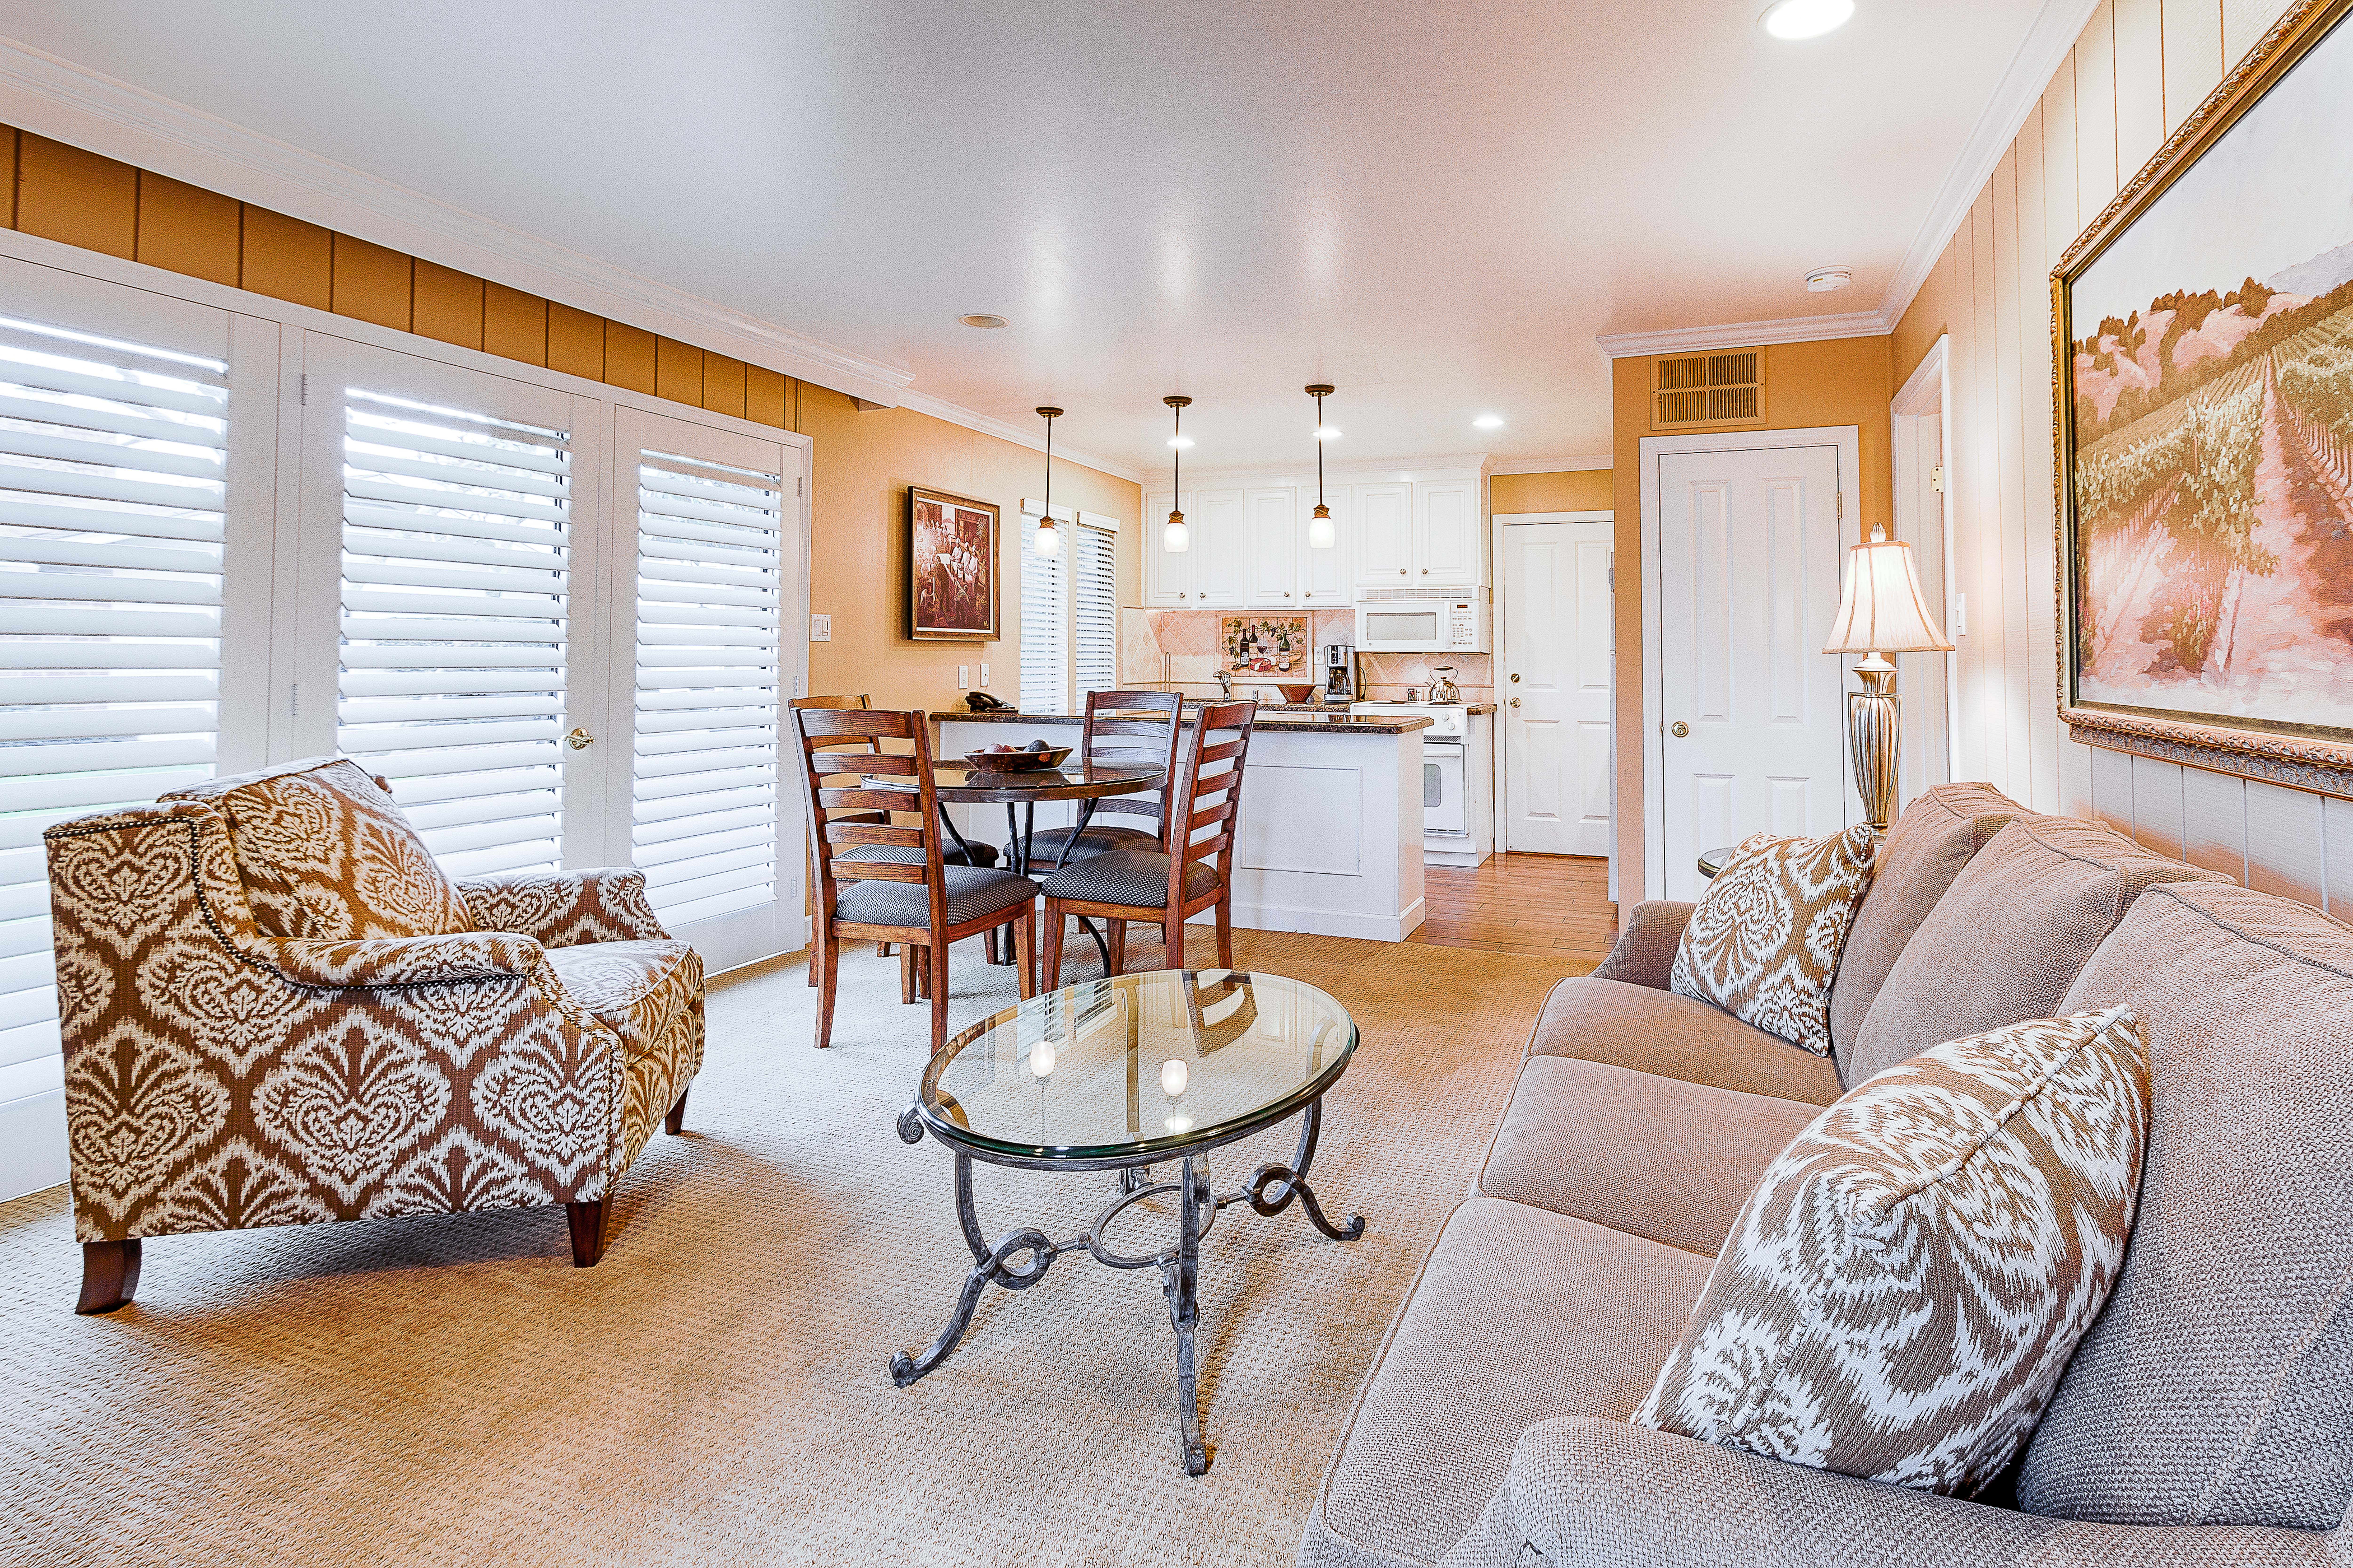 Napa CA Vacation Rental Welcome! This romantic